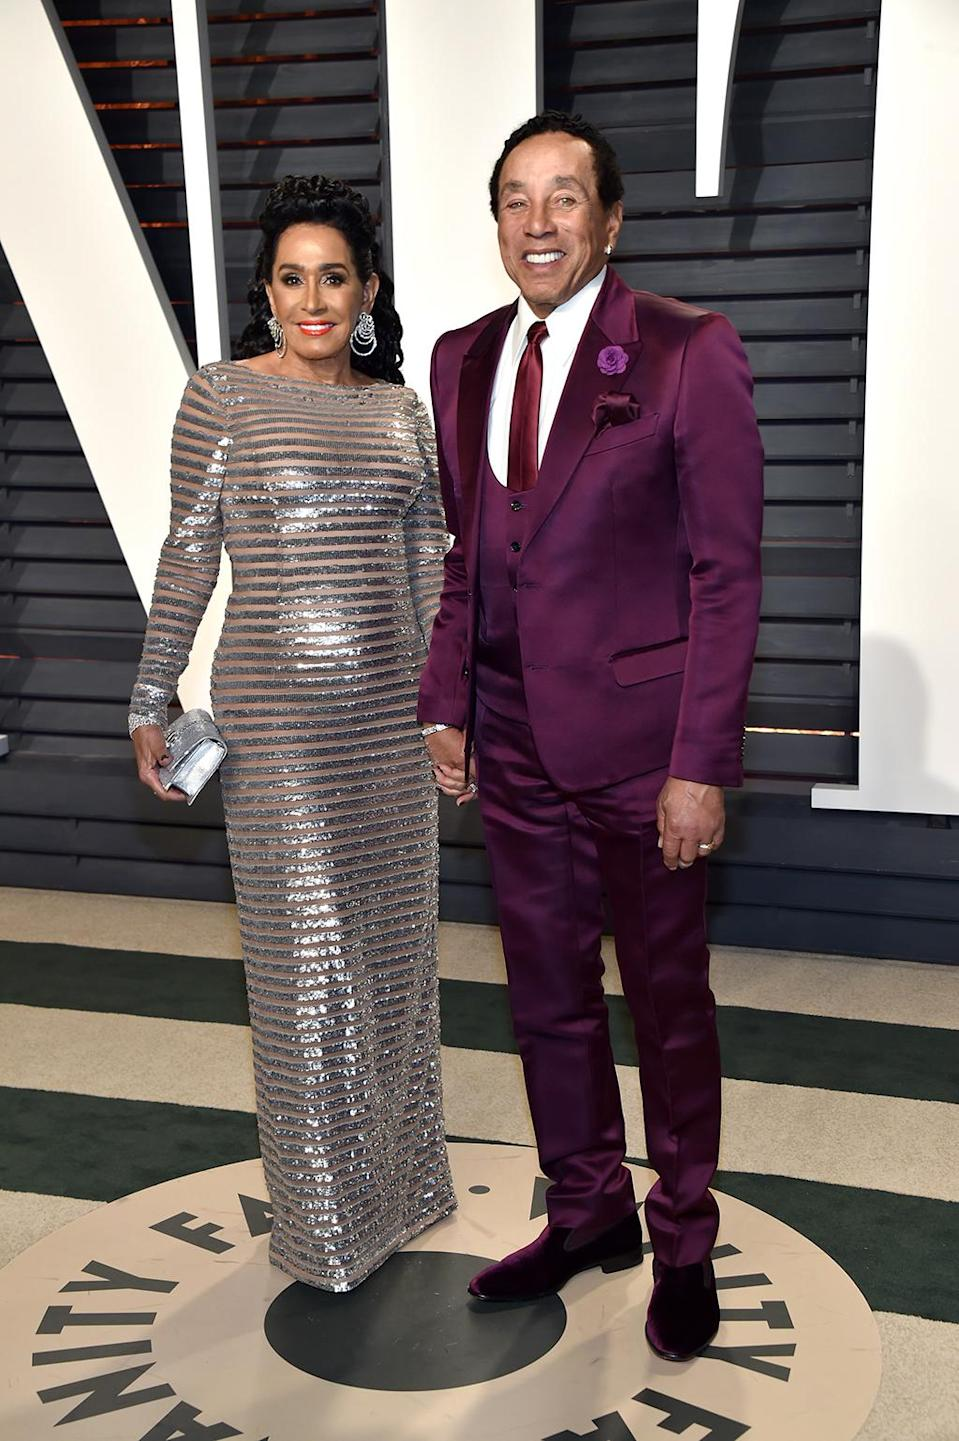 <p>Frances Glandney and Smokey Robinson attend the 2017 Vanity Fair Oscar Party hosted by Graydon Carter at Wallis Annenberg Center for the Performing Arts on February 26, 2017 in Beverly Hills, California. (Photo by Pascal Le Segretain/Getty Images) </p>